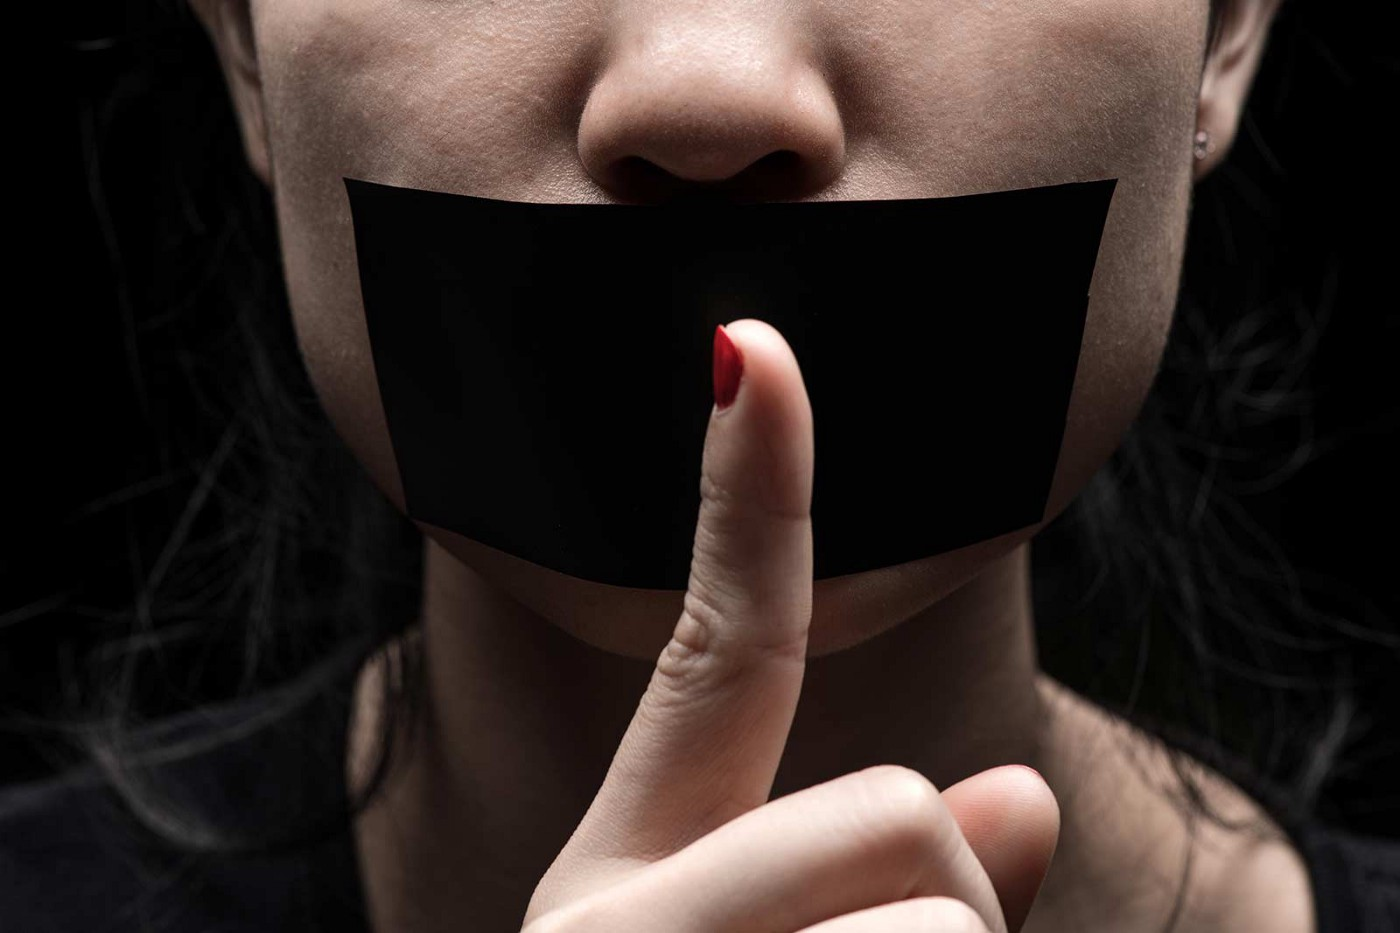 A woman has black tape over her mouth. She holds up a finger, telling us to be silent.